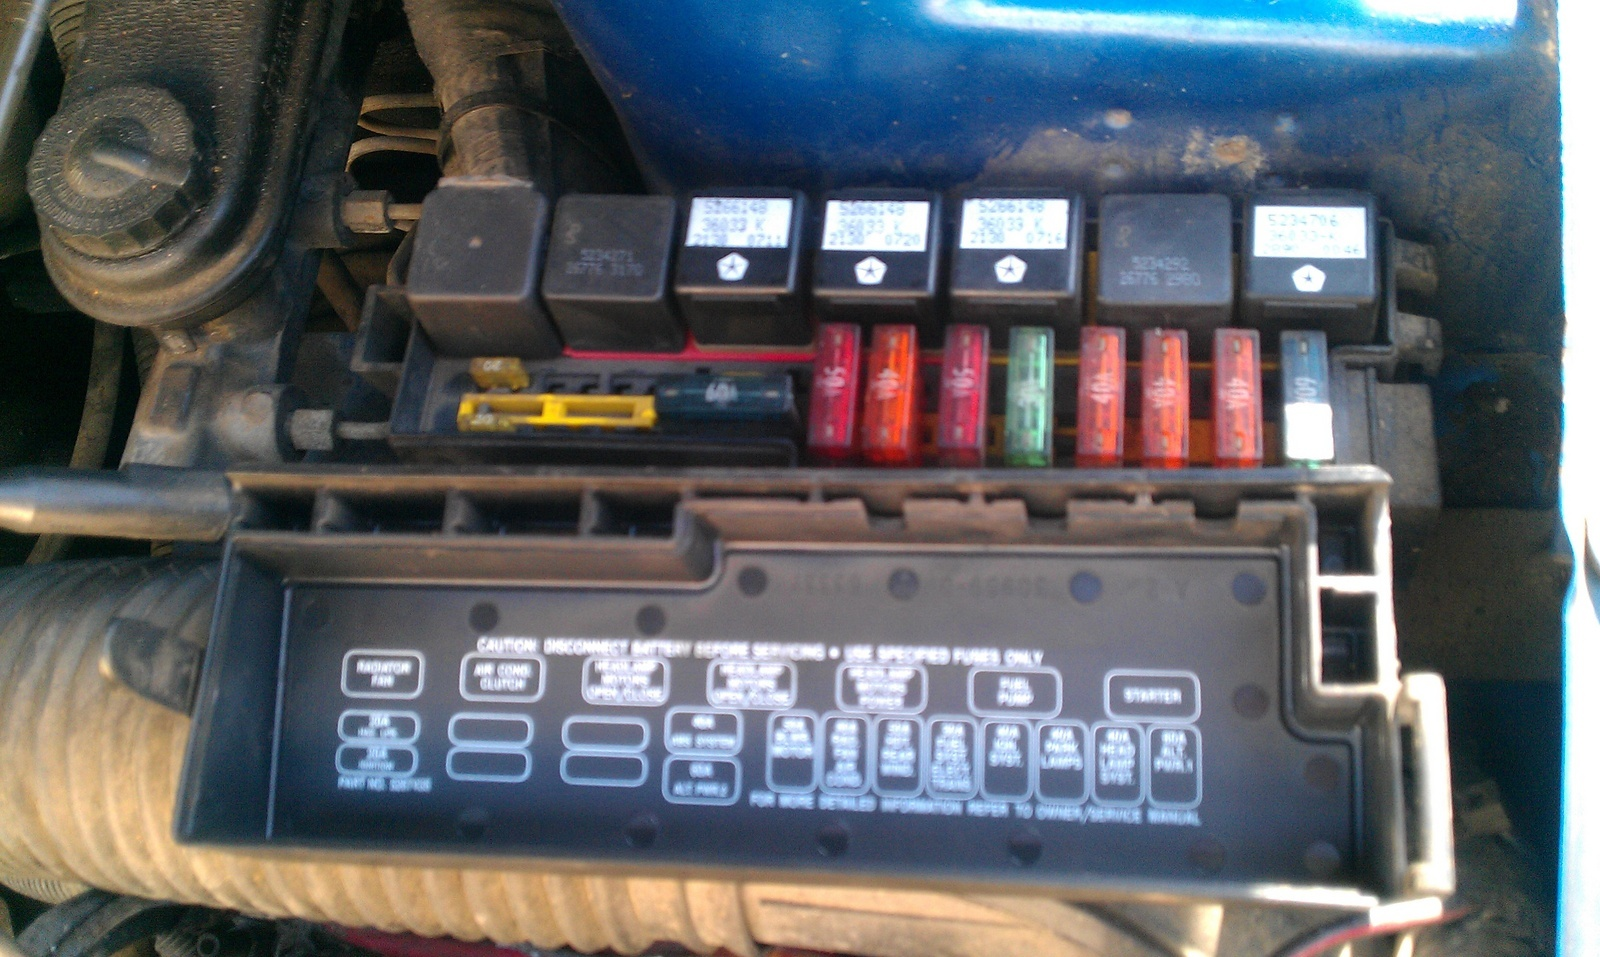 hight resolution of 1999 firebird fuse box images gallery dodge daytona questions my fuel pump stays on after